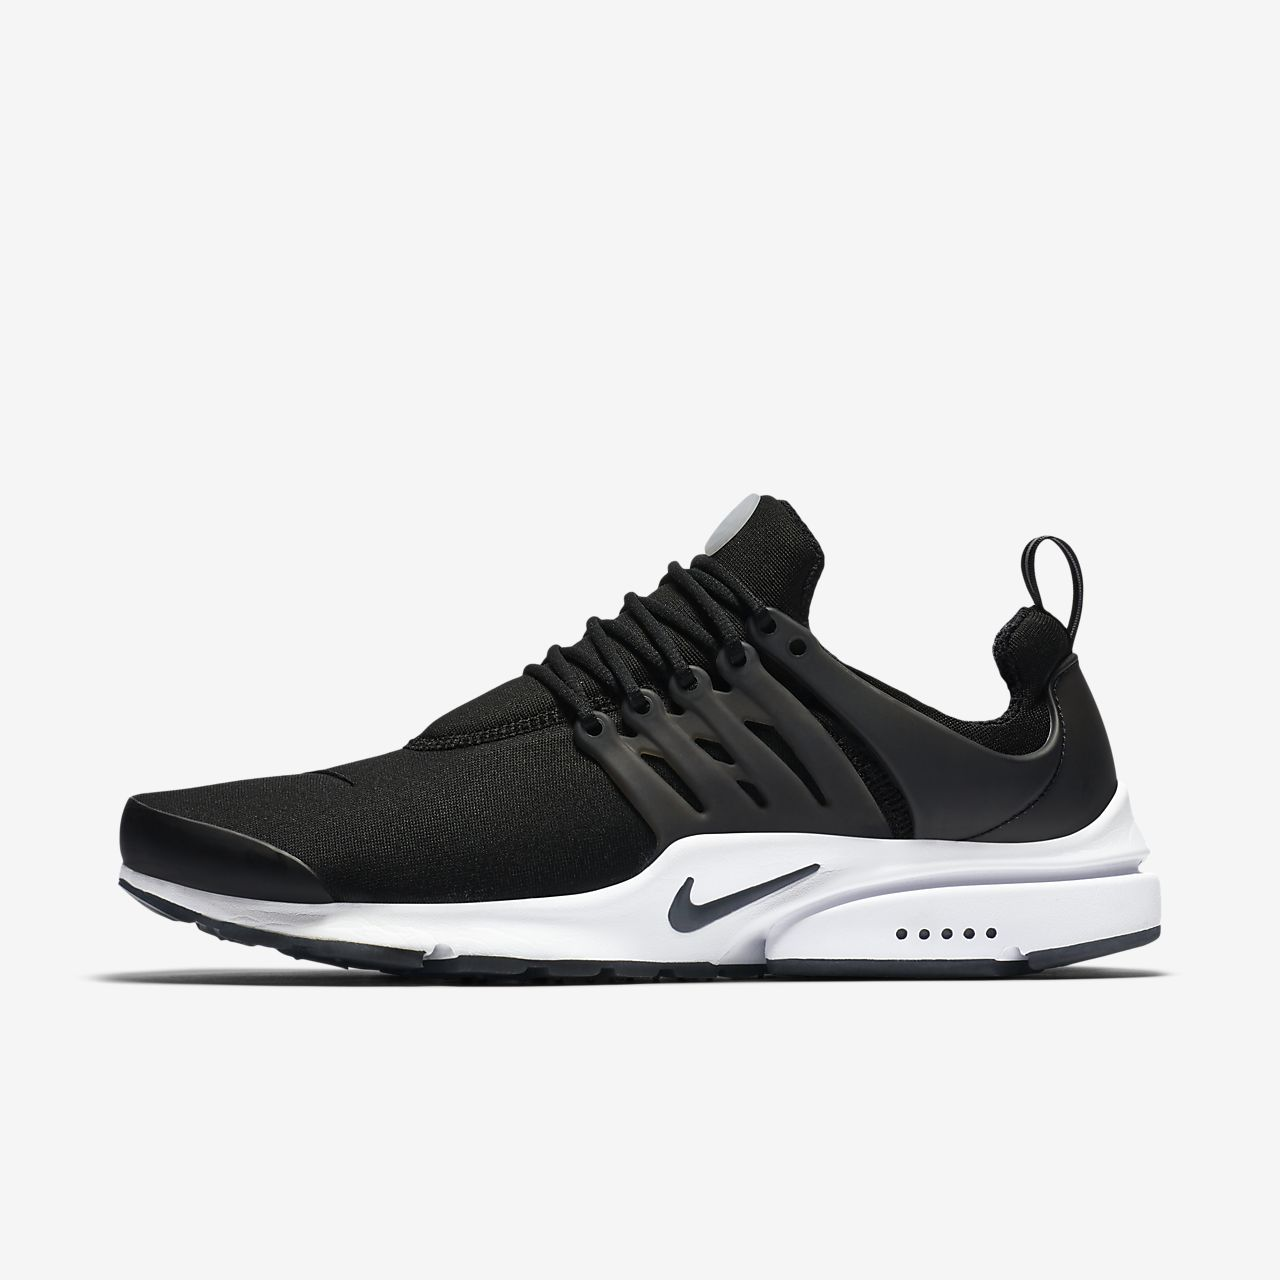 ... Nike Air Presto Essential Men's Shoe